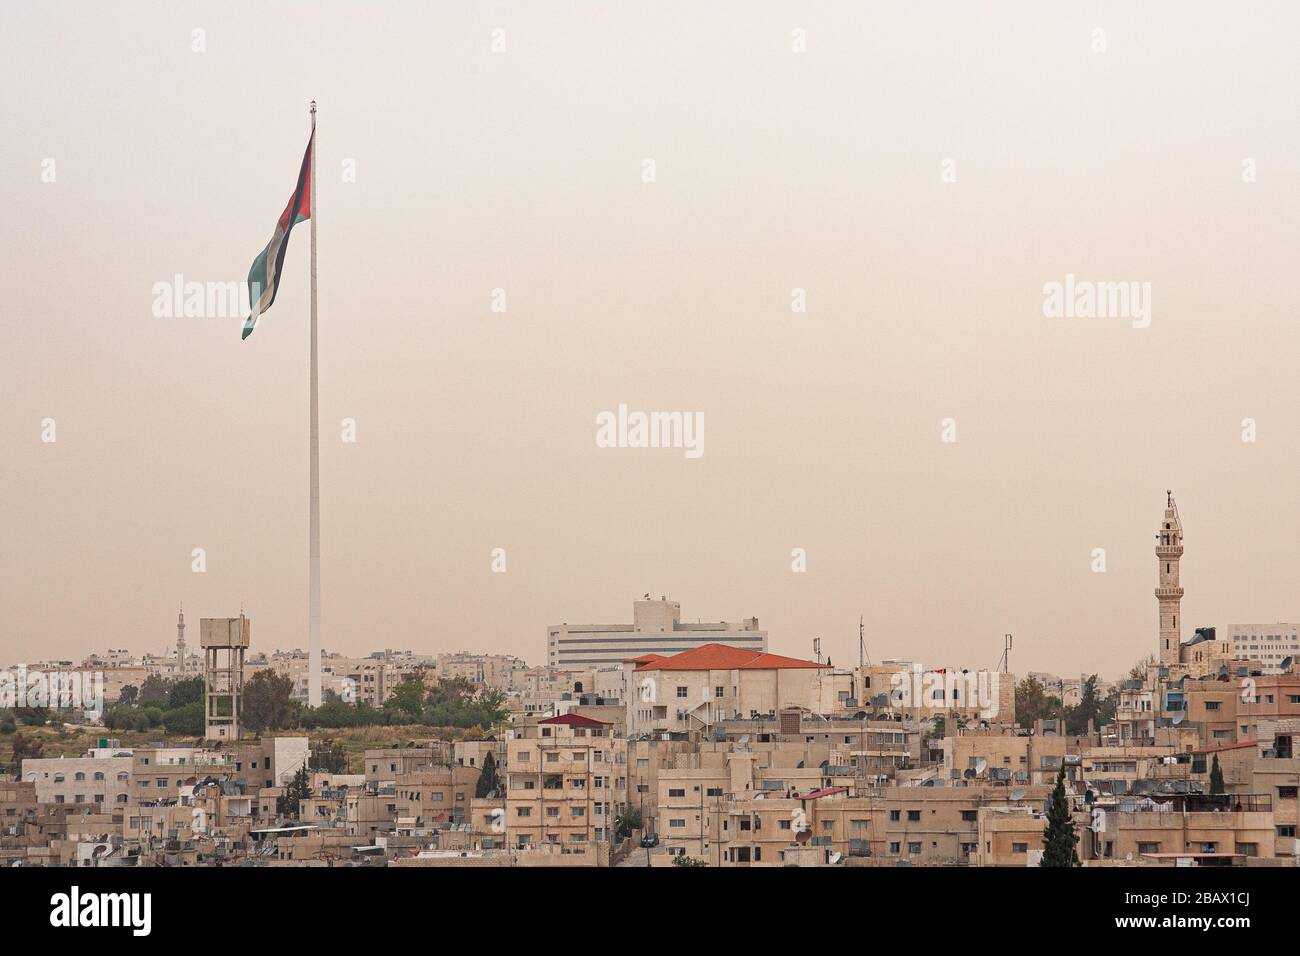 The Raghadan Flagpole, one of the tallest free-standing flagpoles in the world, stand on top of a hill in Amman, Jordan. Stock Photo